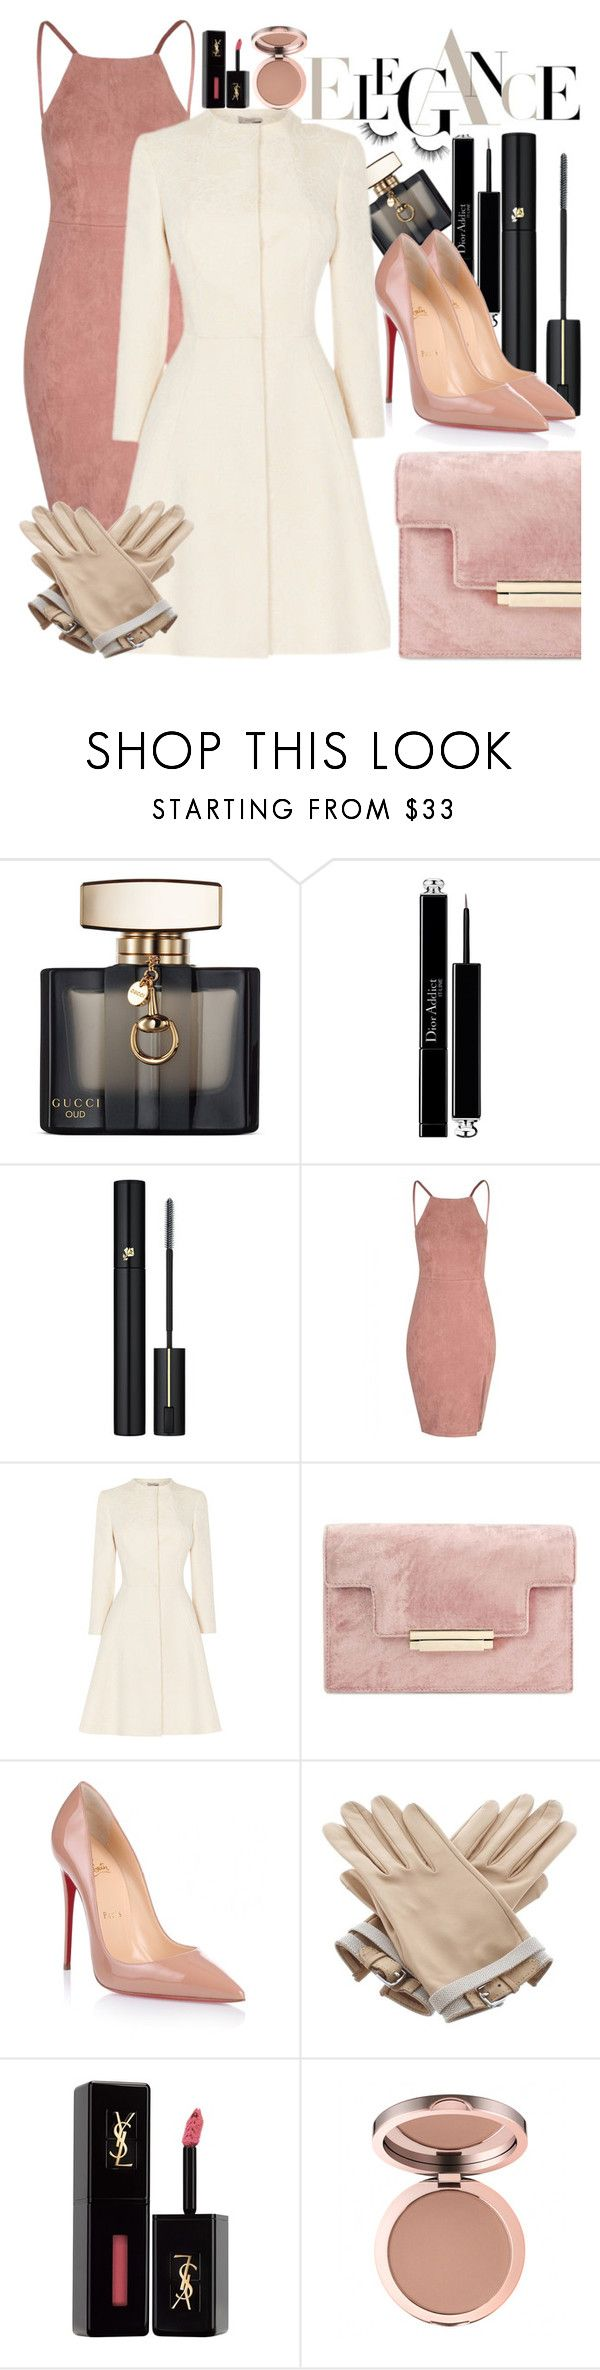 """""""Untitled #380"""" by sassymermaid ❤ liked on Polyvore featuring Gucci, Christian Dior, Lancôme, Christian Louboutin, Hermès, Yves Saint Laurent and tarte"""